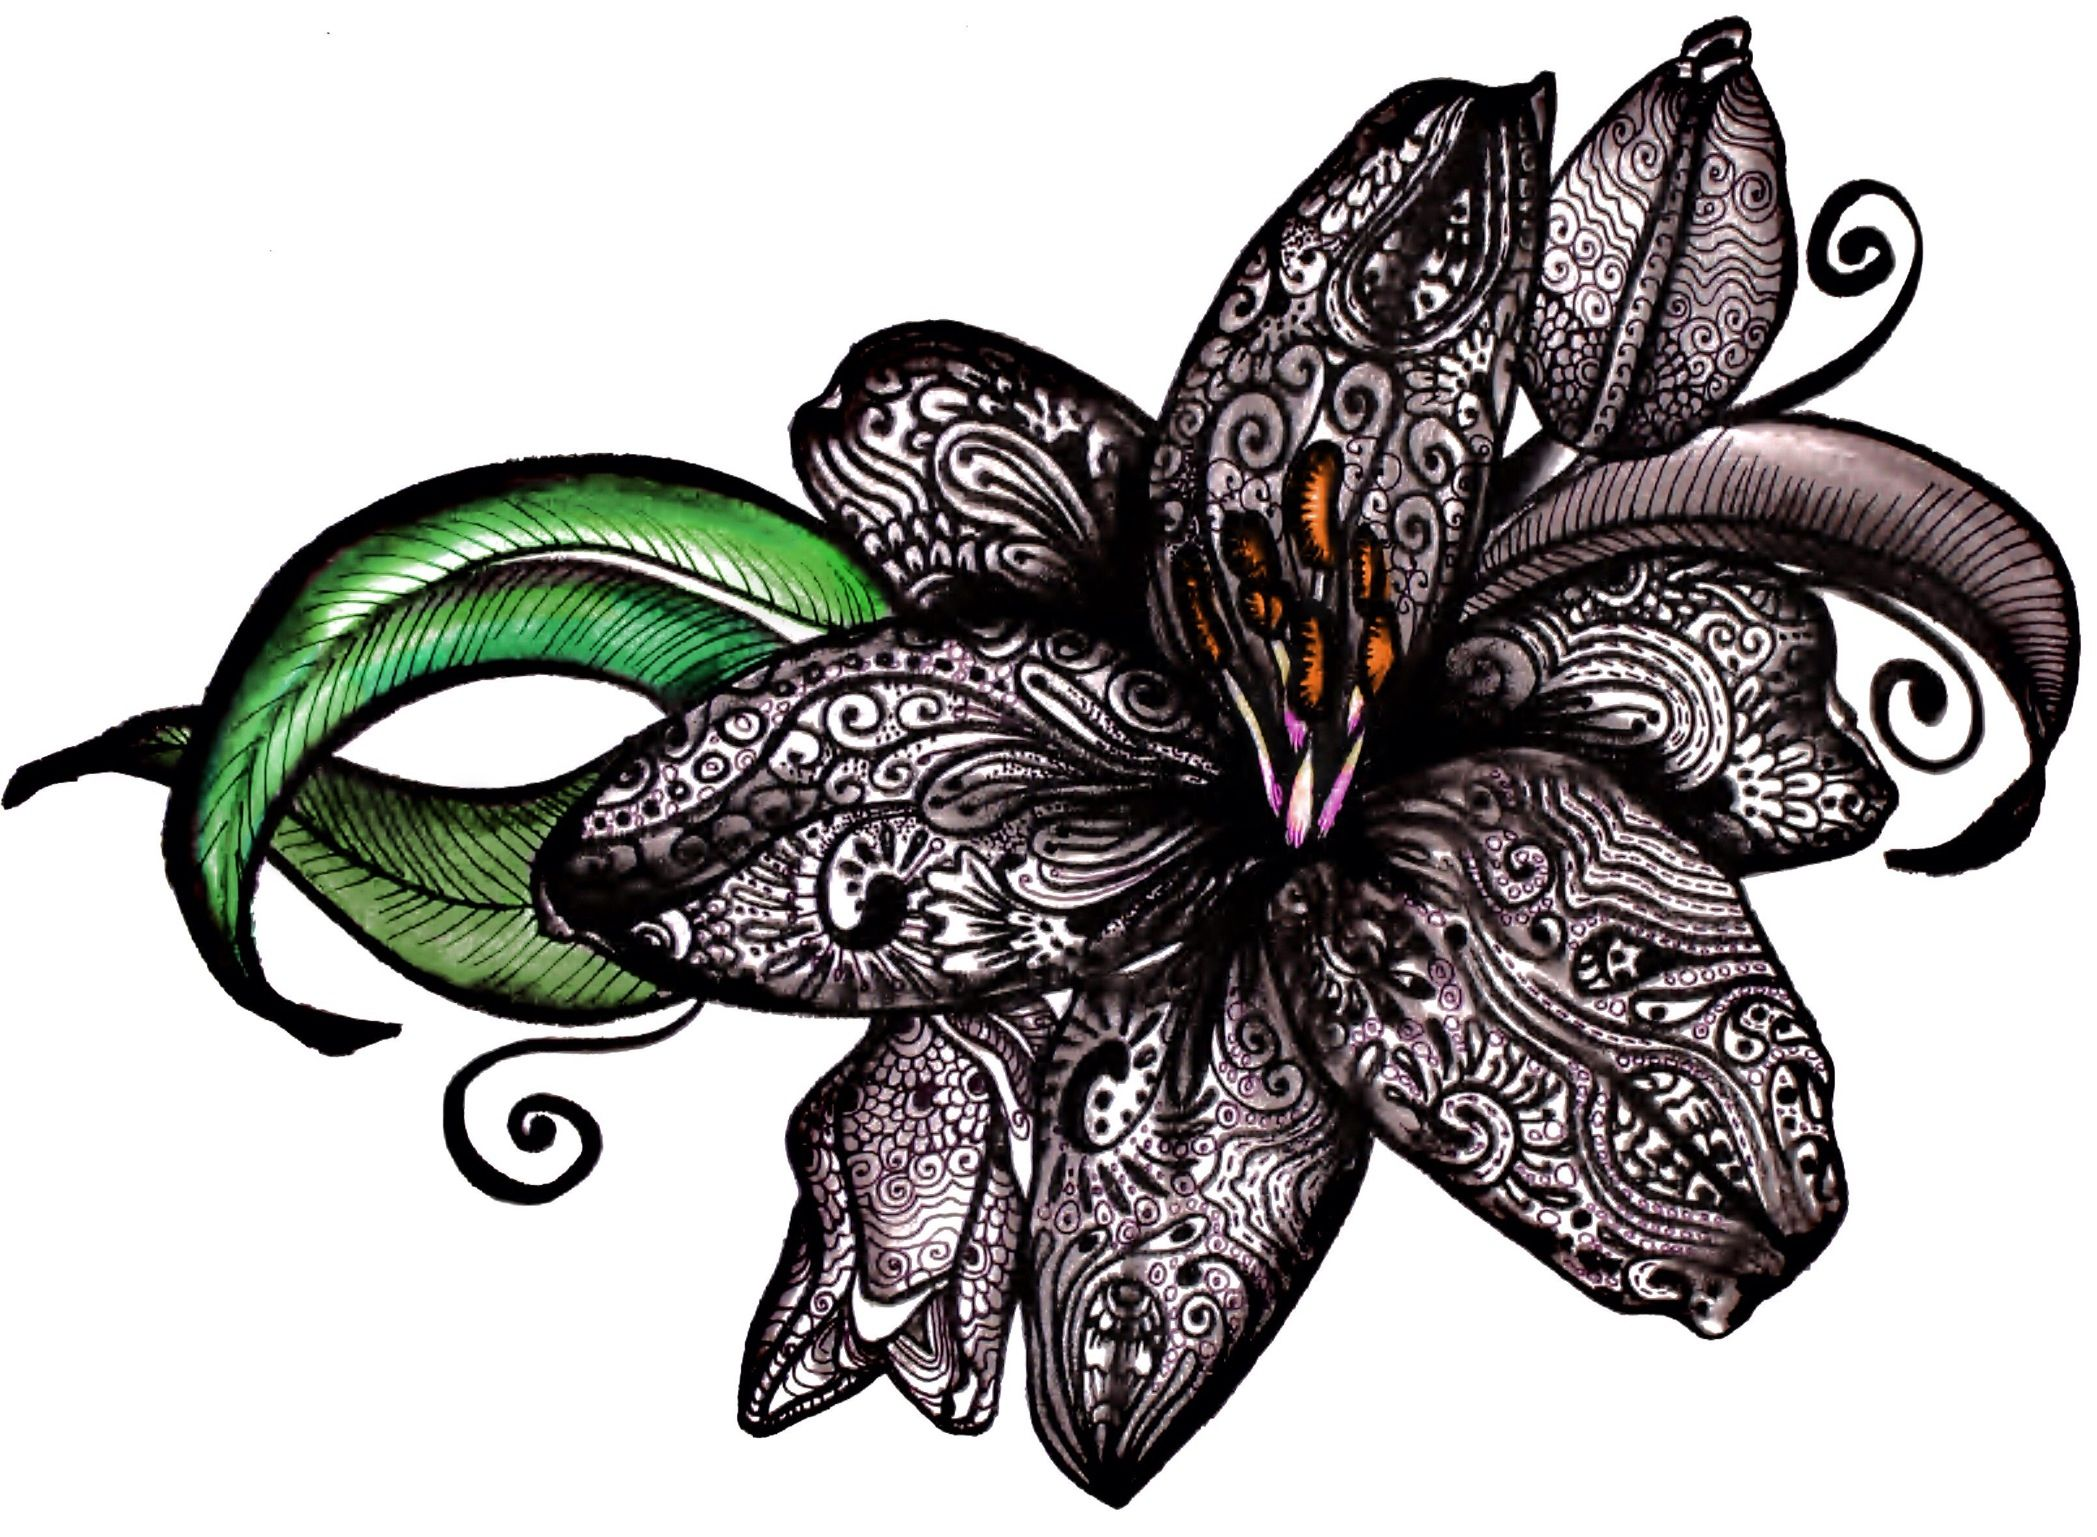 Just awesome tattoos i lovehavewant pinterest tattoo one of my first tattoo designs my first commission as it were friend never went and got it chickened out when she saw the needle being used on someone izmirmasajfo